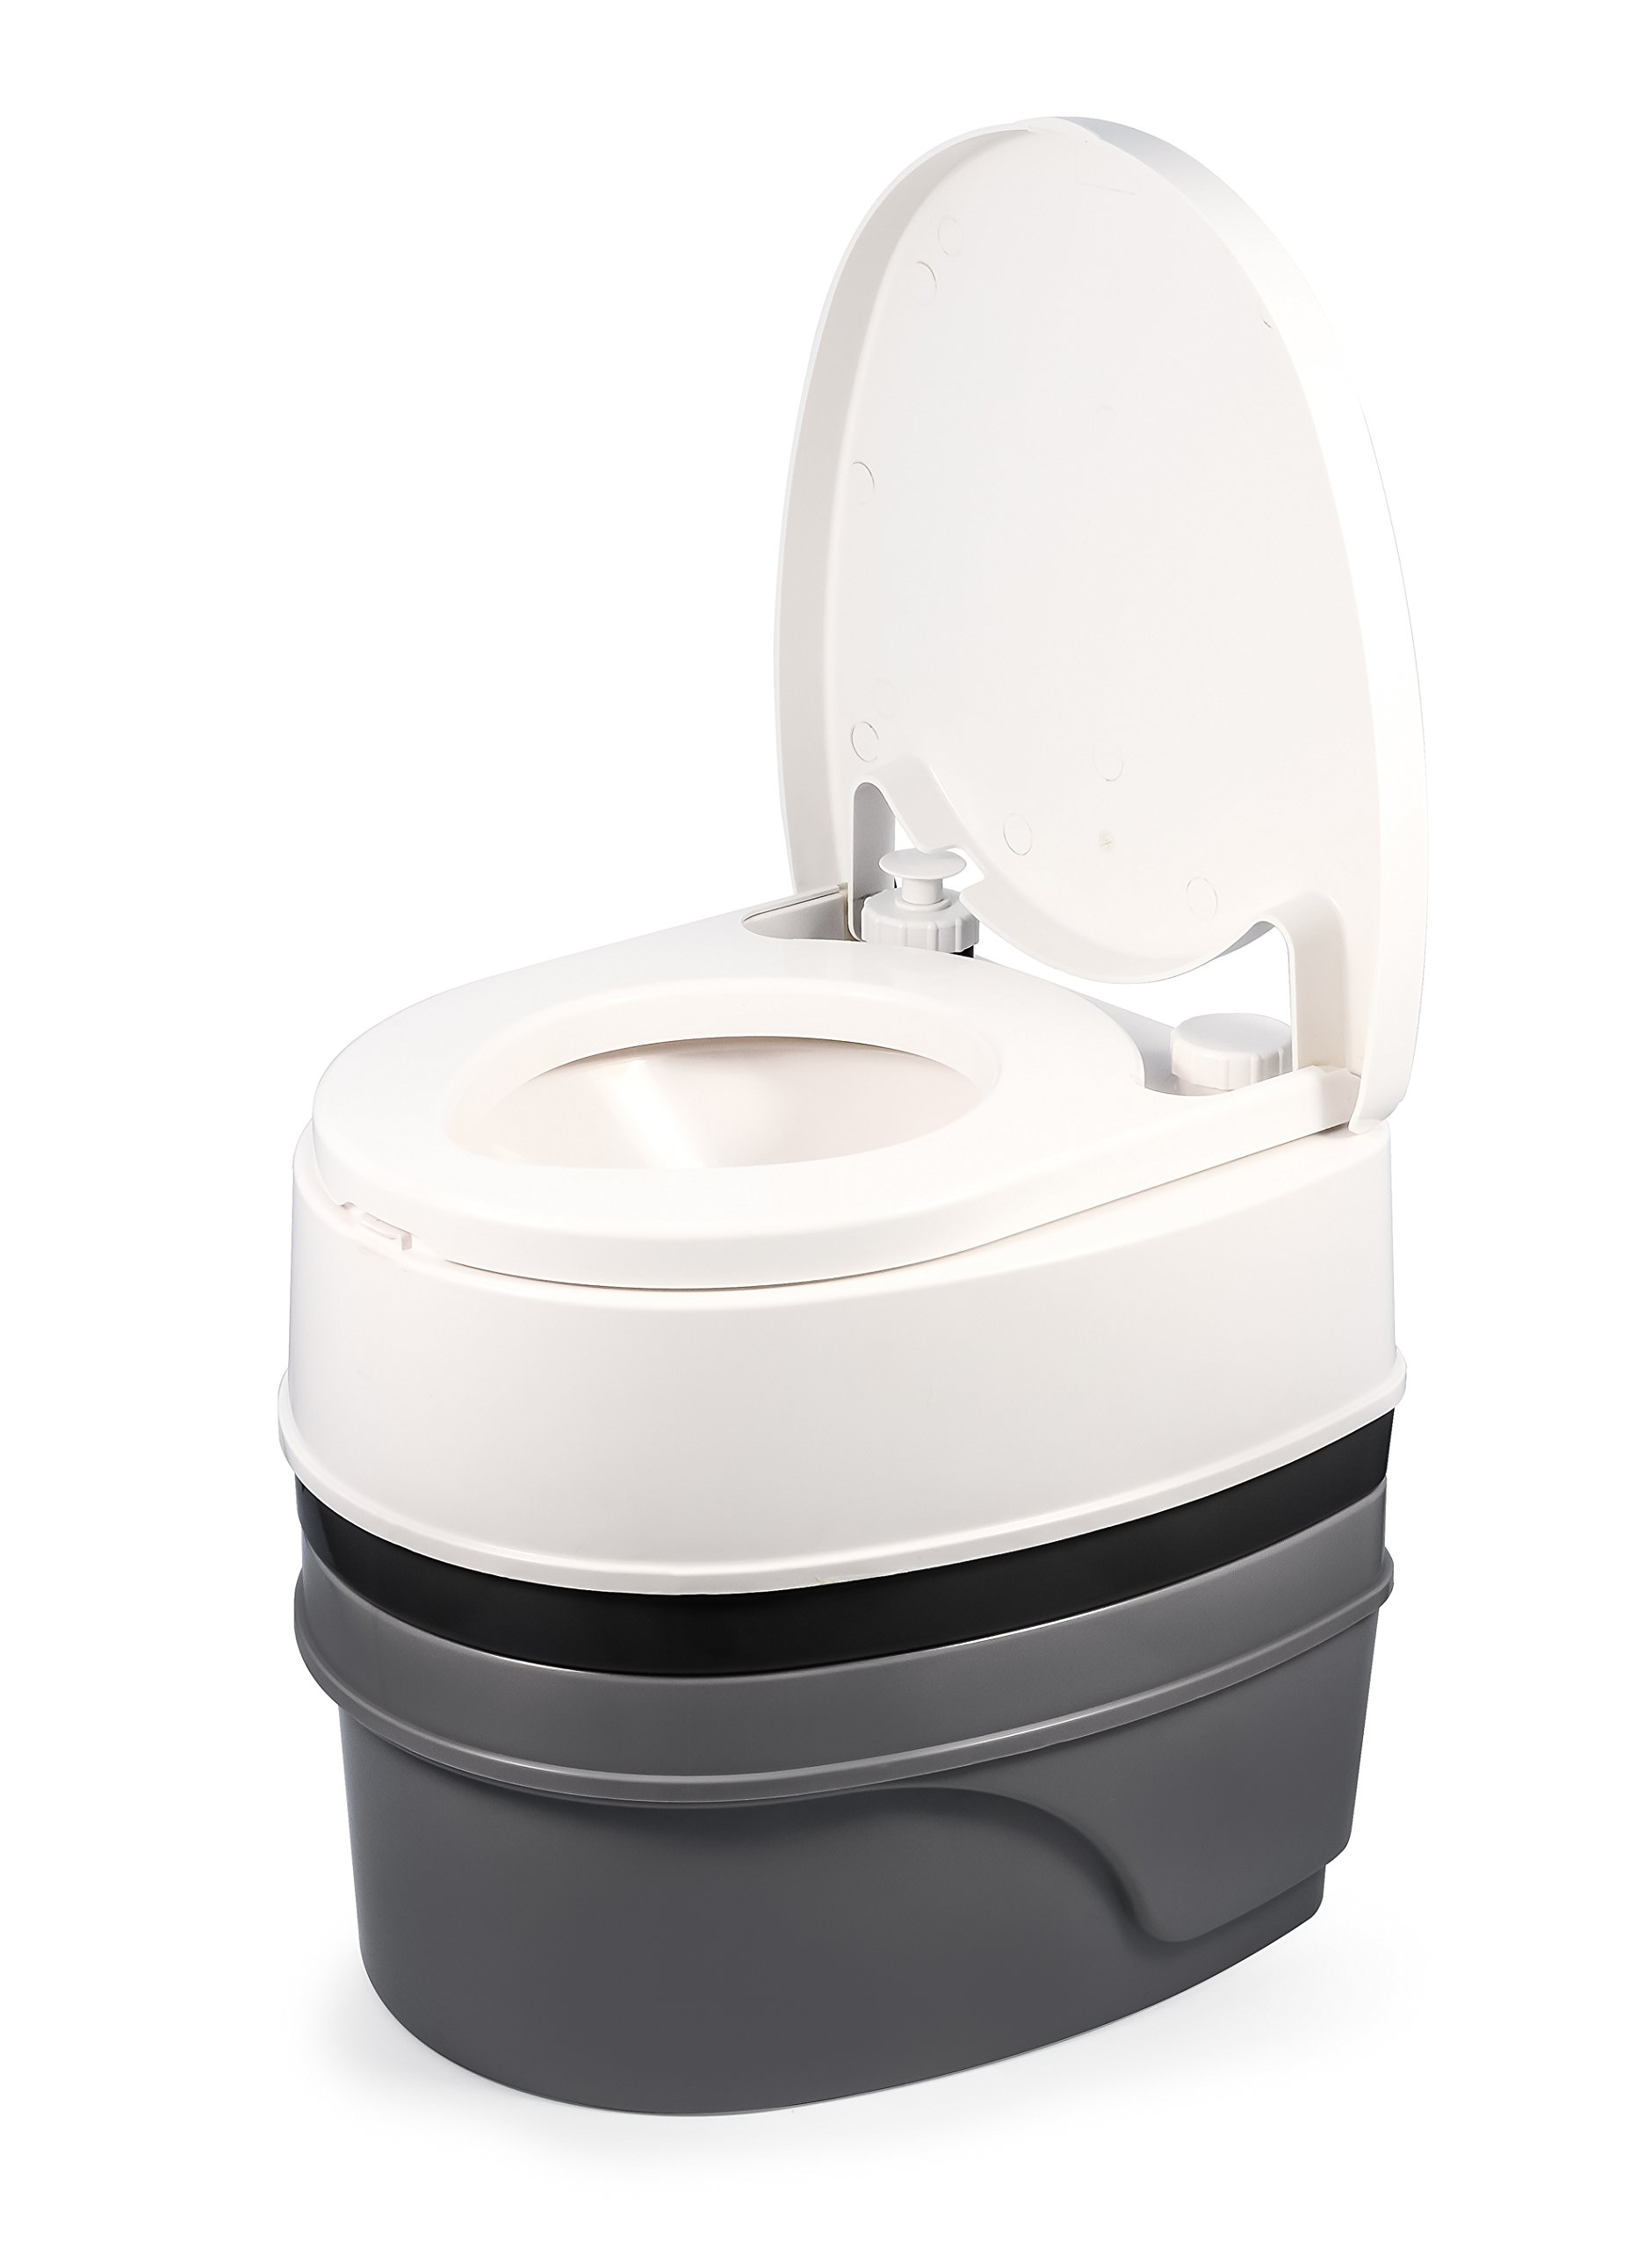 Best toilet on the market reviews - Camco 5 3 Gallon 41545 Travel Toilet